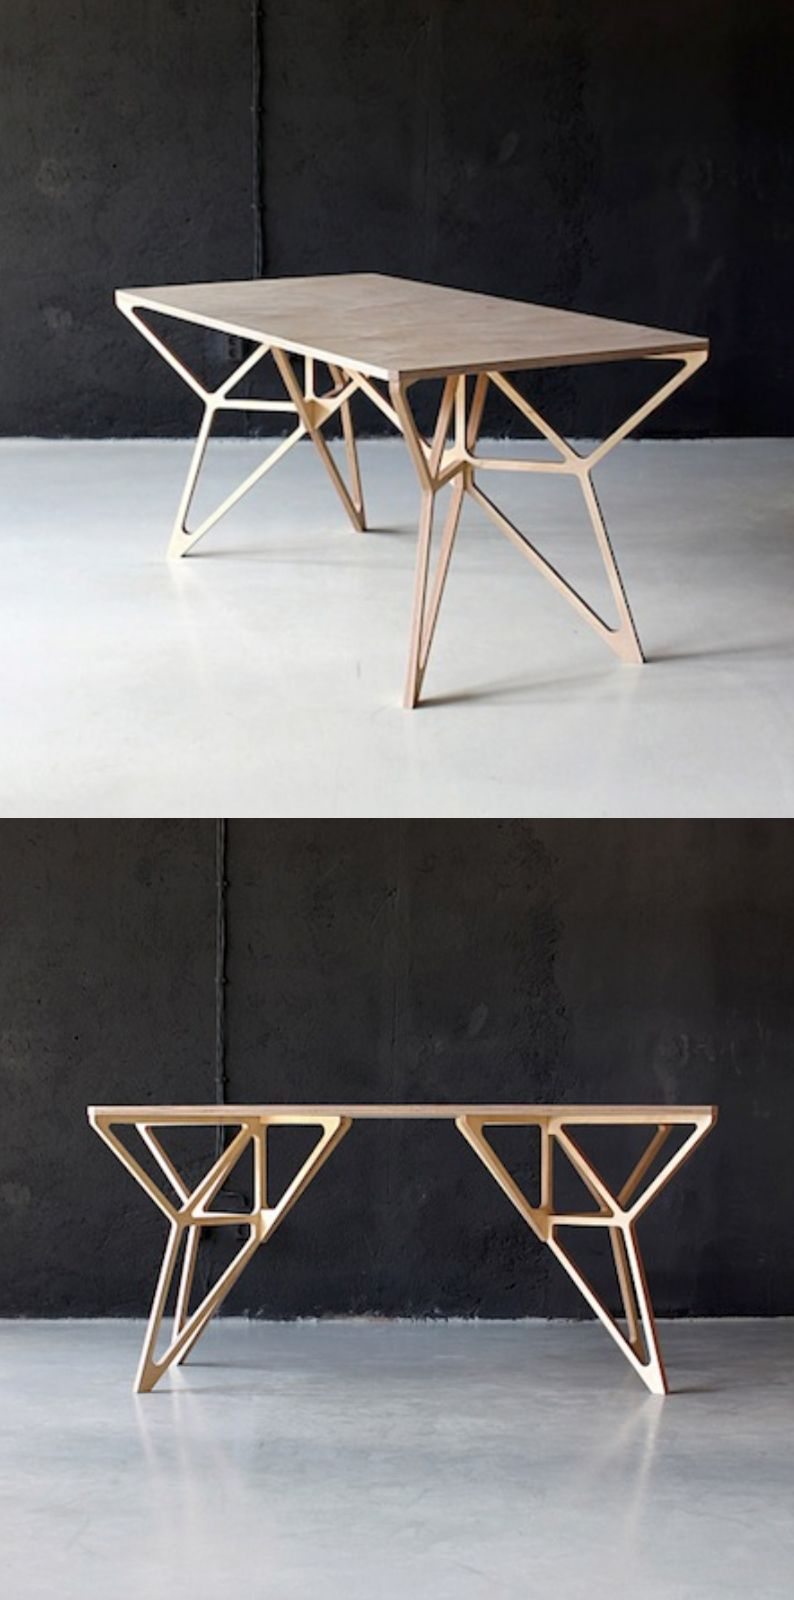 Best 25+ Geometric Furniture Ideas On Pinterest | Furniture Design,  Triangle Coffee Table And Glass Furniture